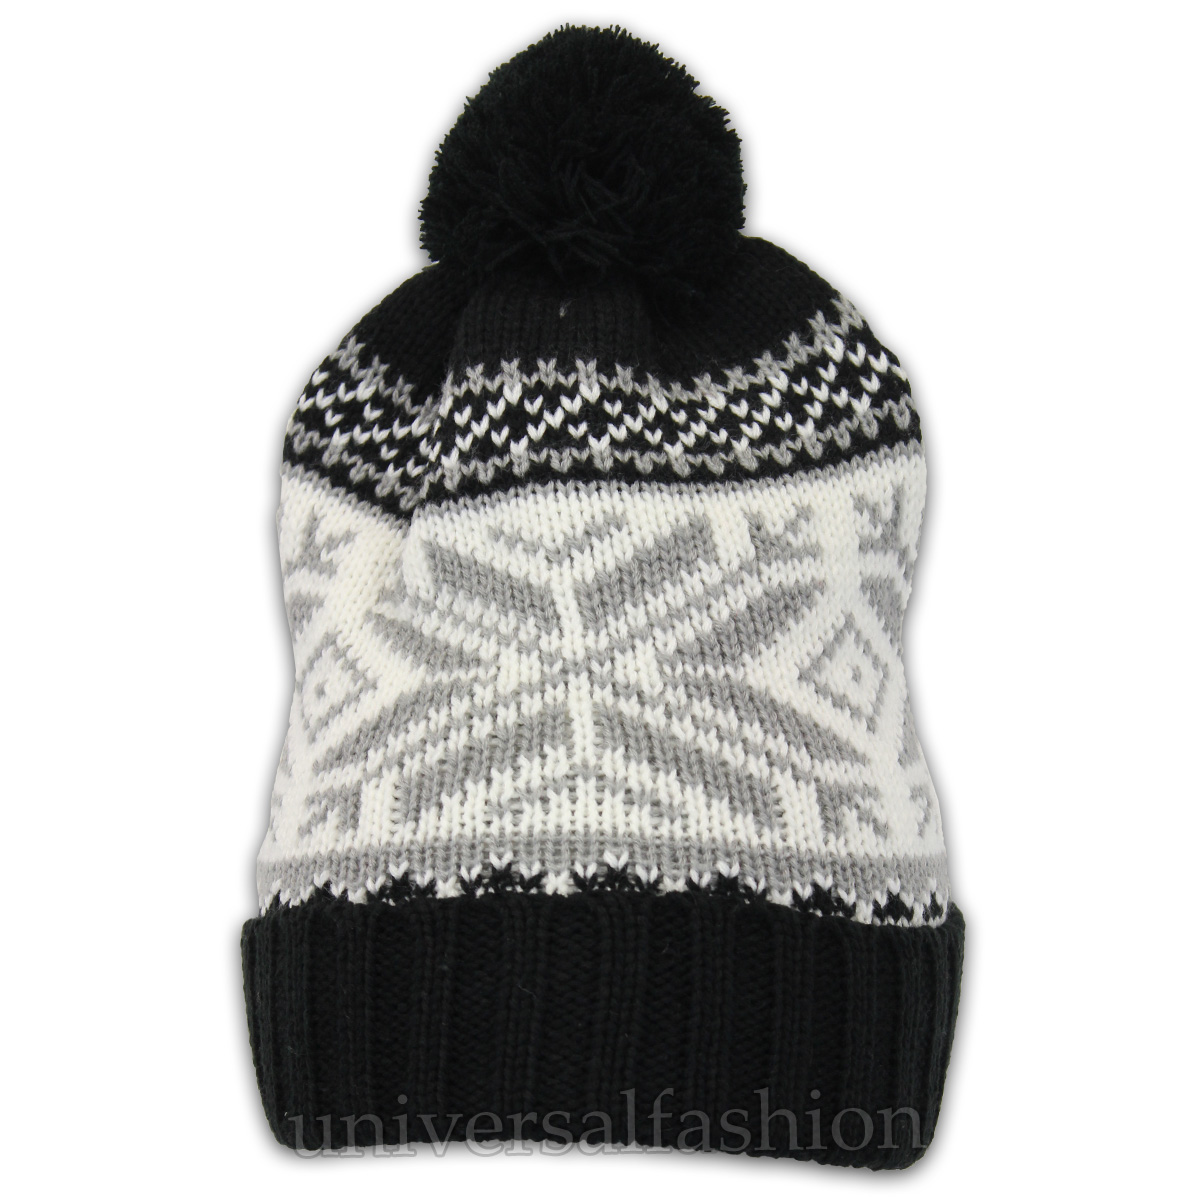 1f8f8a92326 ... Winter Reindeer Pom Pom Beanie Hat Black - Pom1 One Size. About this  product. Picture 1 of 2  Picture 2 of 2